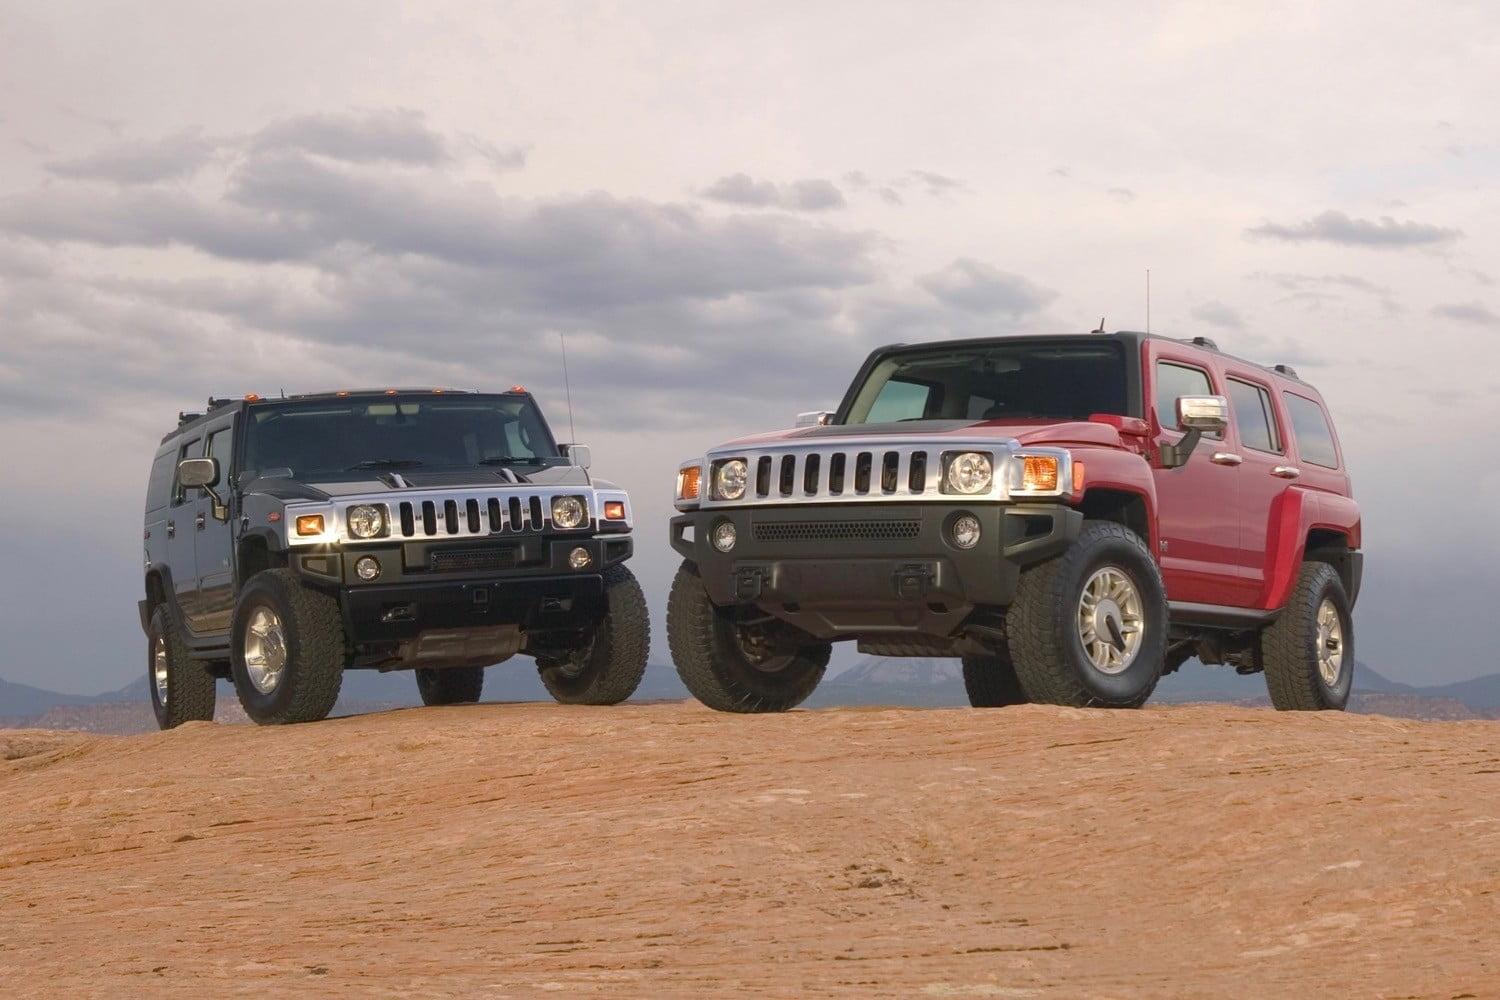 Hummer H2 and Hummer H3 SUVs